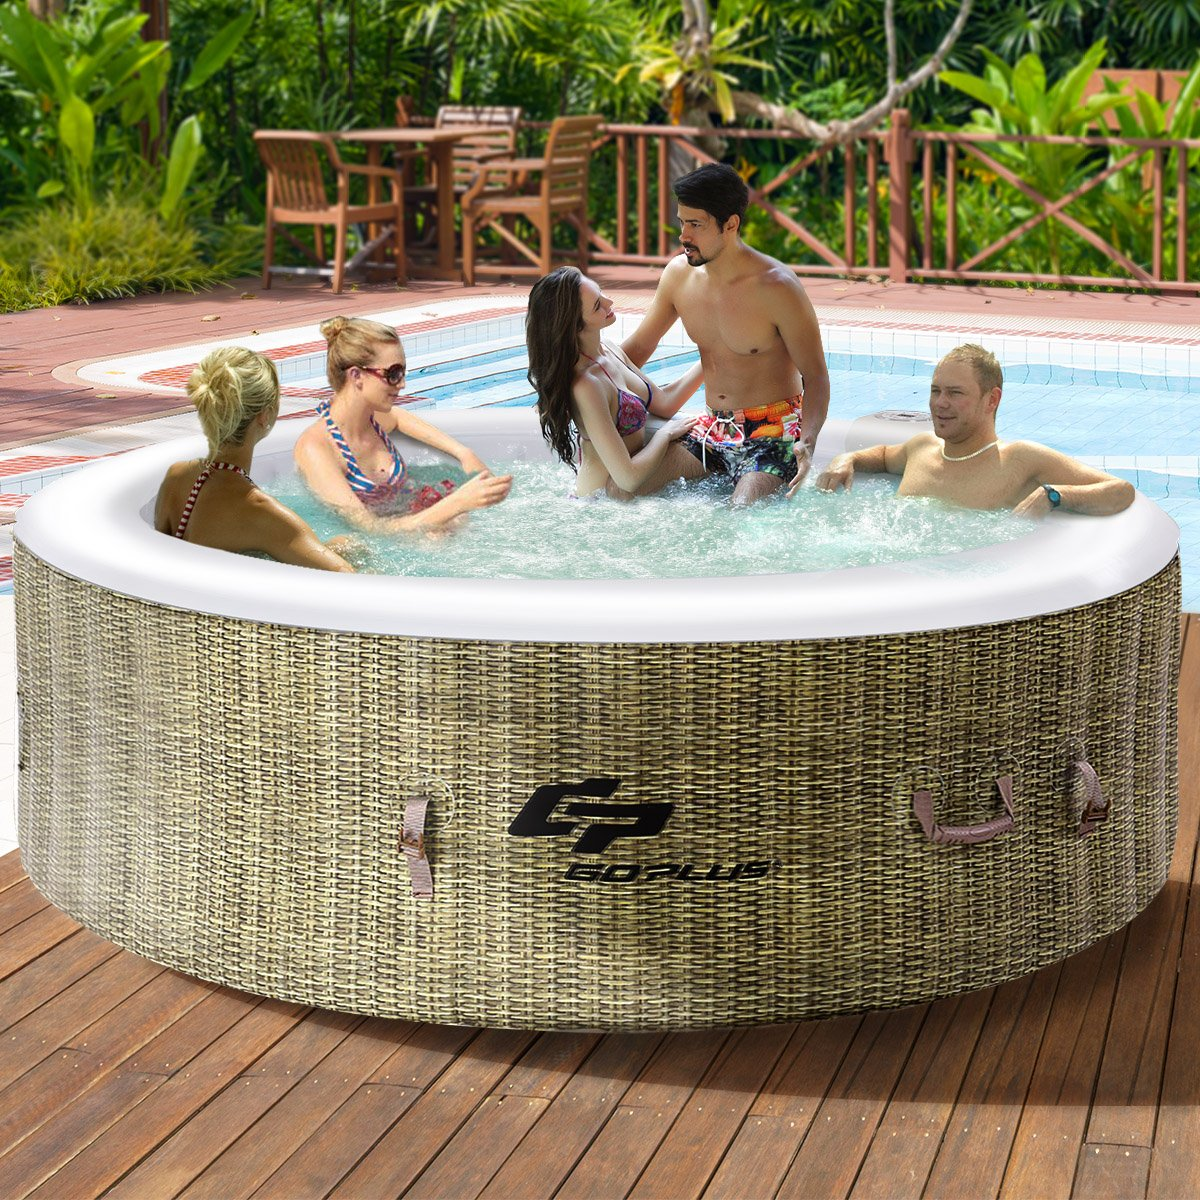 Goplus 6 Person Inflatable Hot Tub for Portable Outdoor Jets Bubble Massage Spa Relaxing w/Accessories (Coffee) by Goplus (Image #2)